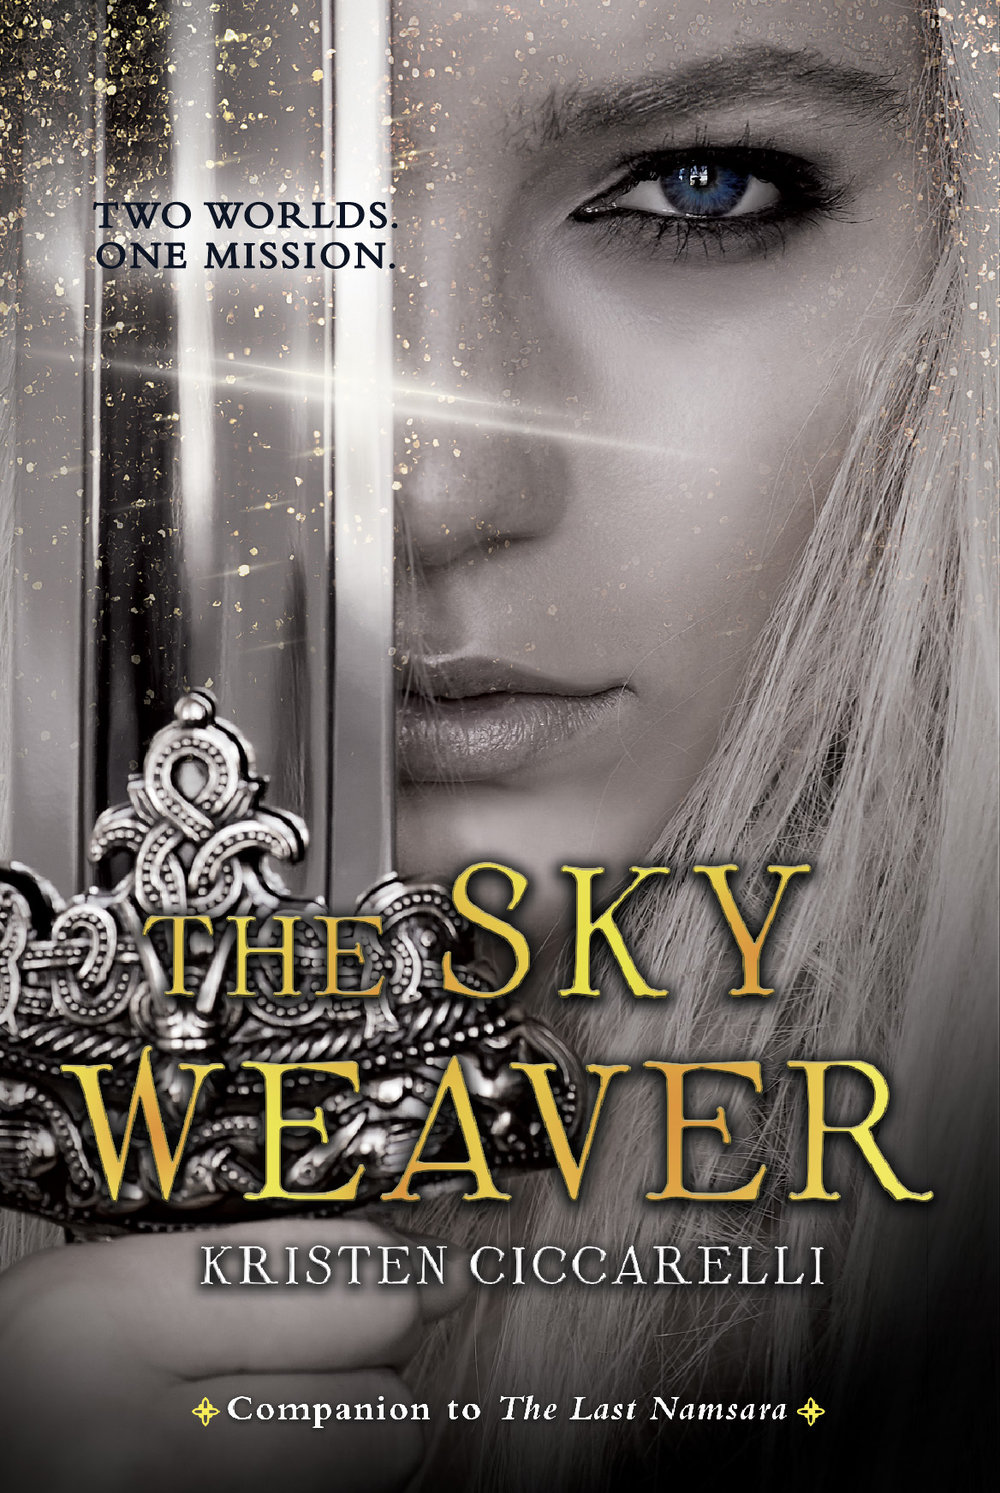 THE SKY WEAVER - Safire, a dutiful soldier, must stop Eris—a deadly pirate—from tracking down the last Namsara and delivering her into the hands of the enemy.